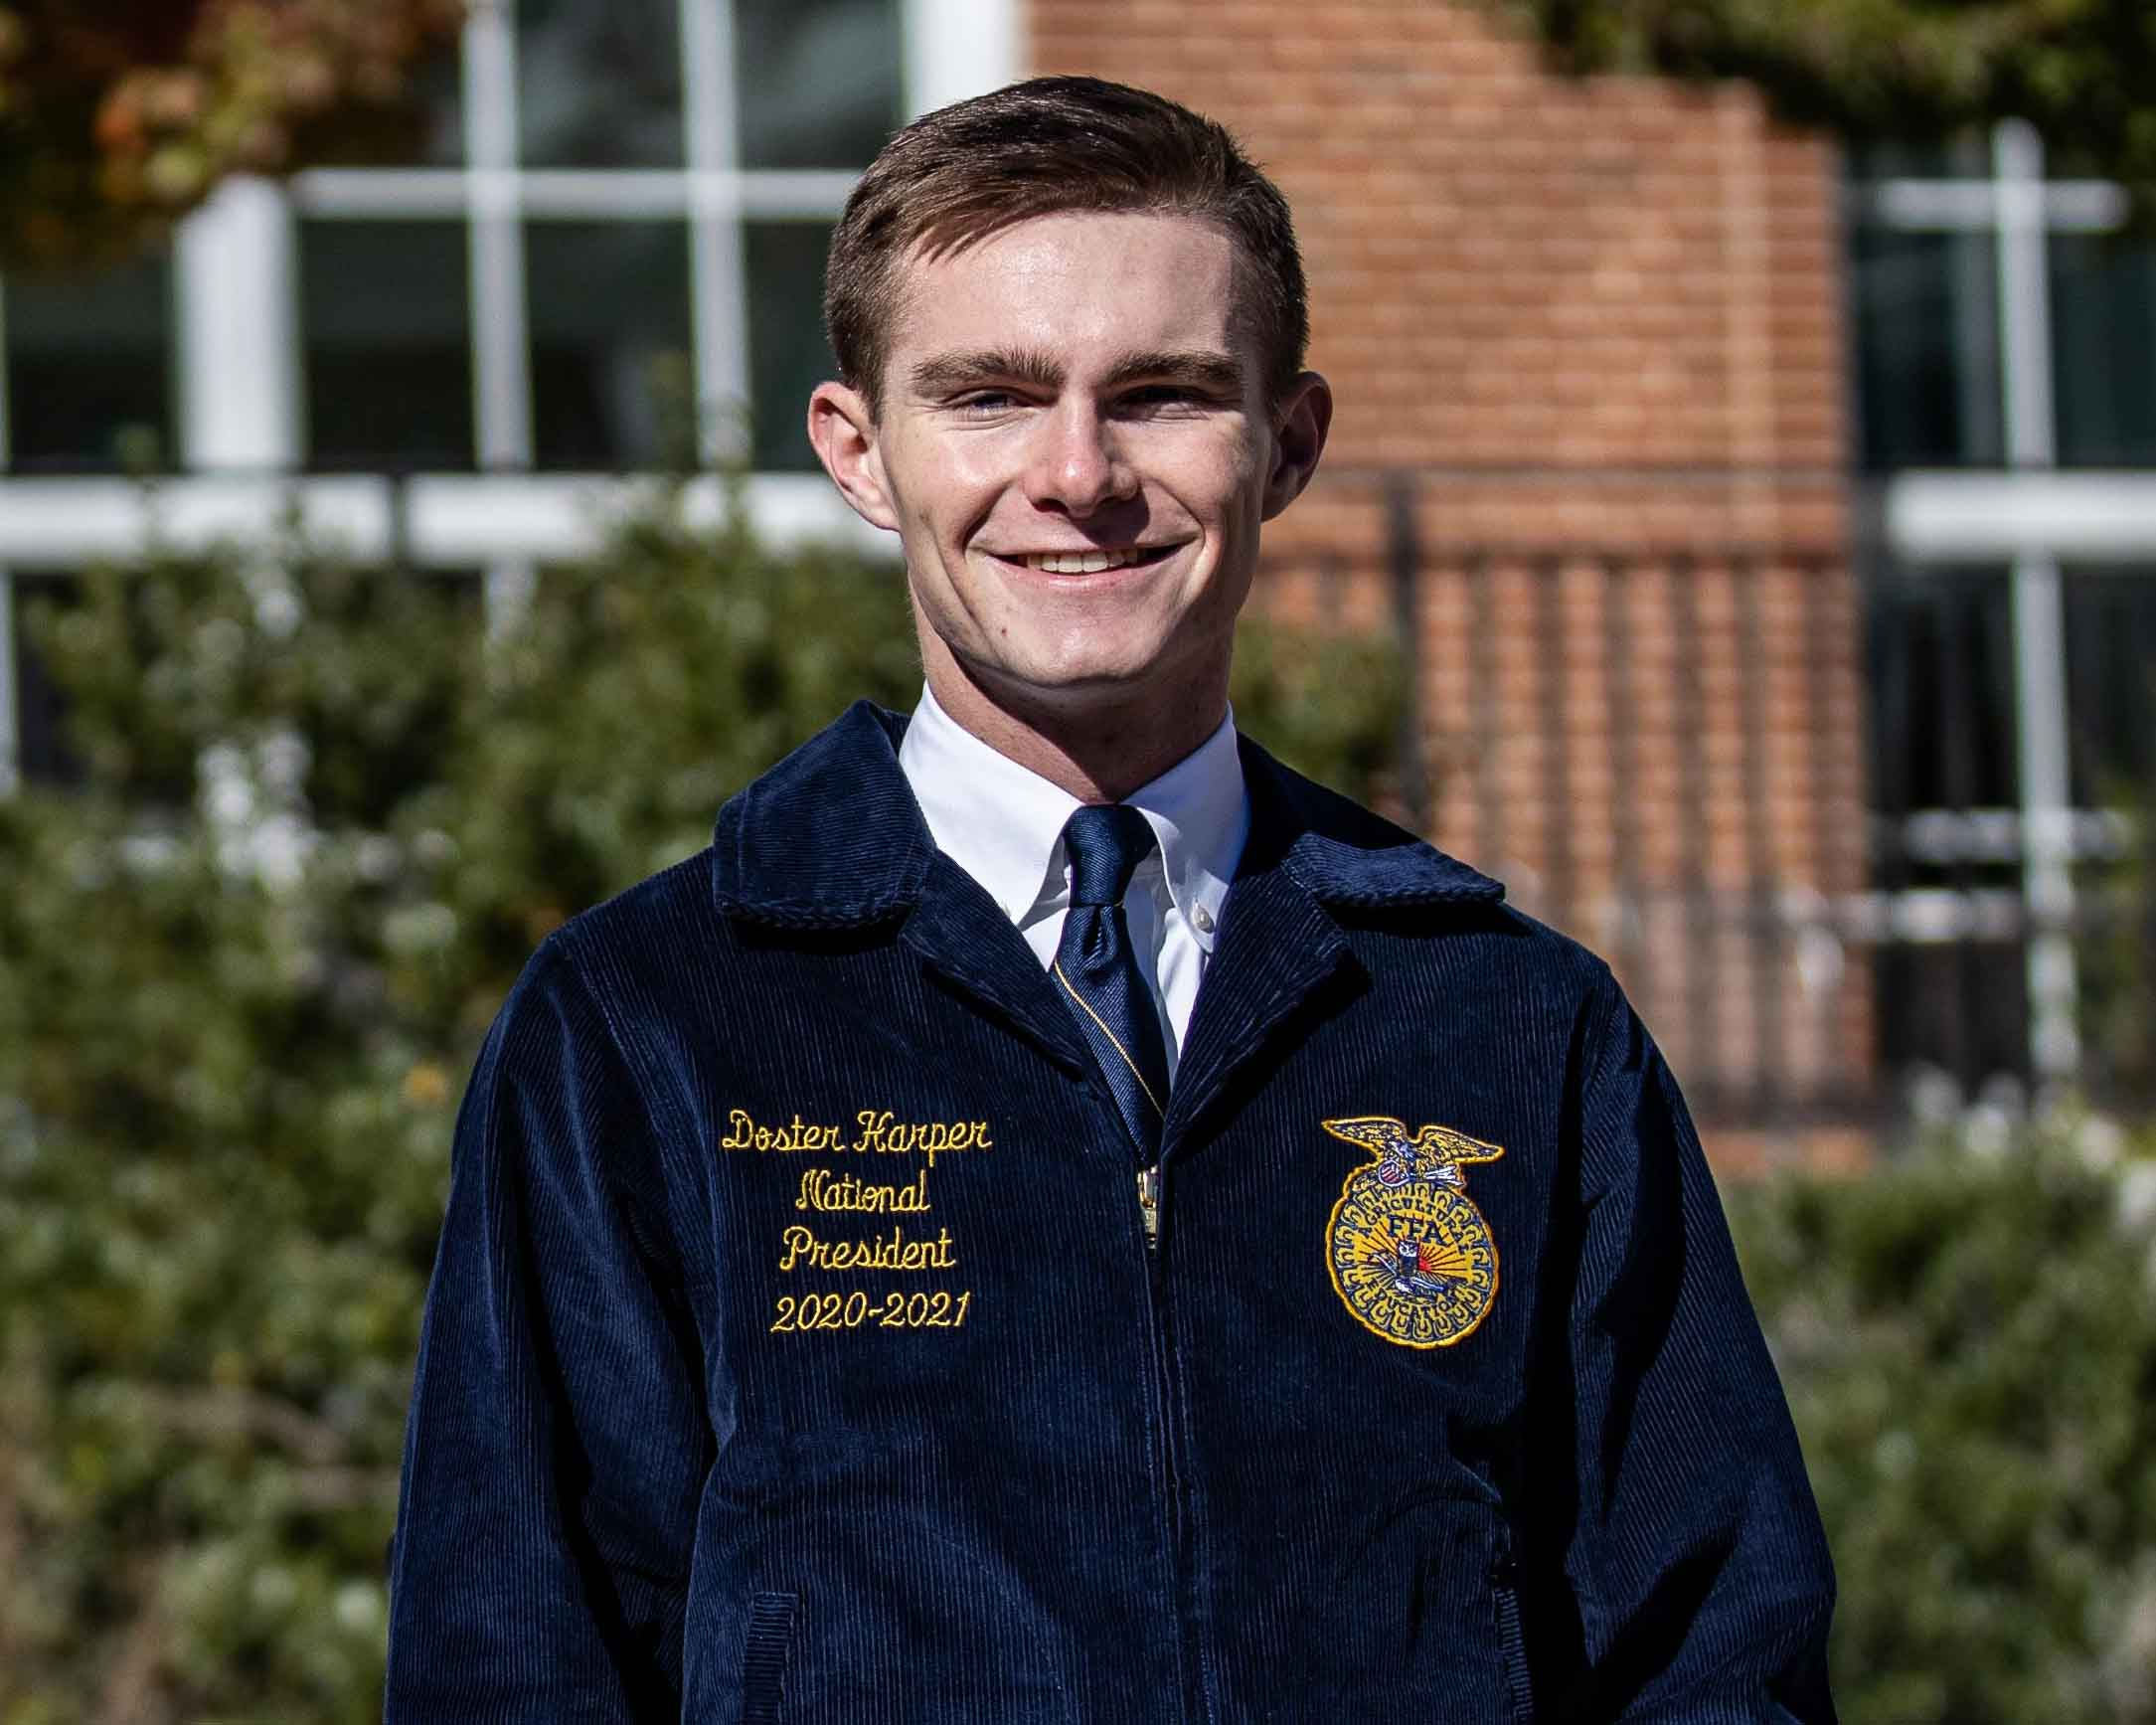 Doster Harper, a junior studying agriscience and environmental systems at the College of Agricultural and Environmental Sciences, was named president of the 2020-21 National FFA Officer Team. Harper is from Covington, Georgia, and attended Newton College and Career Academy. (Photo by Sean Montgomery)